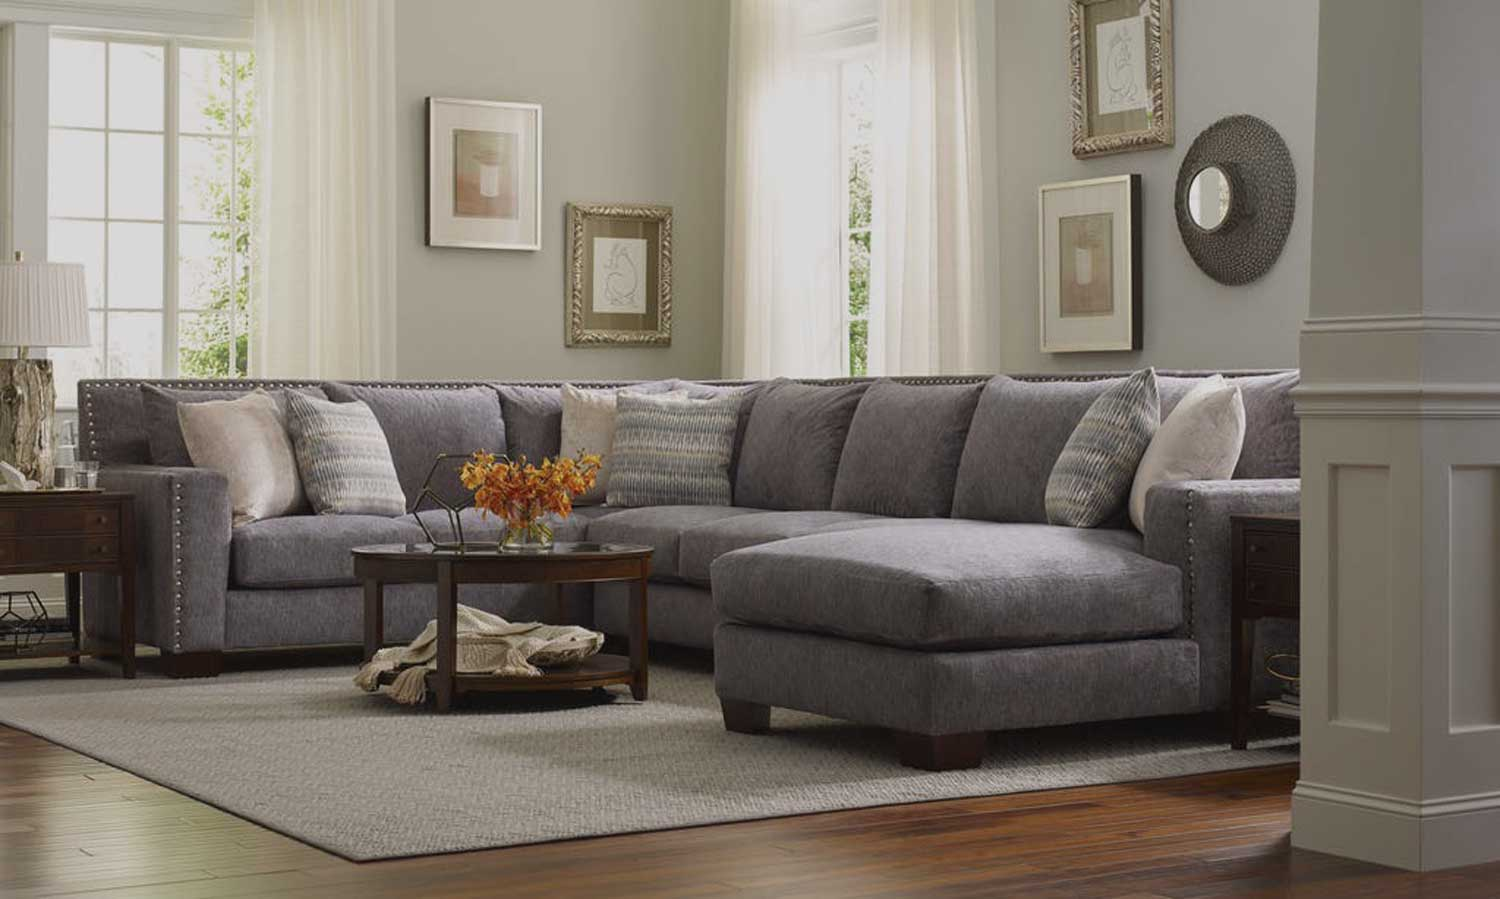 Image of a large, grey sectional couch used to promote England Company items at DeMeyer.